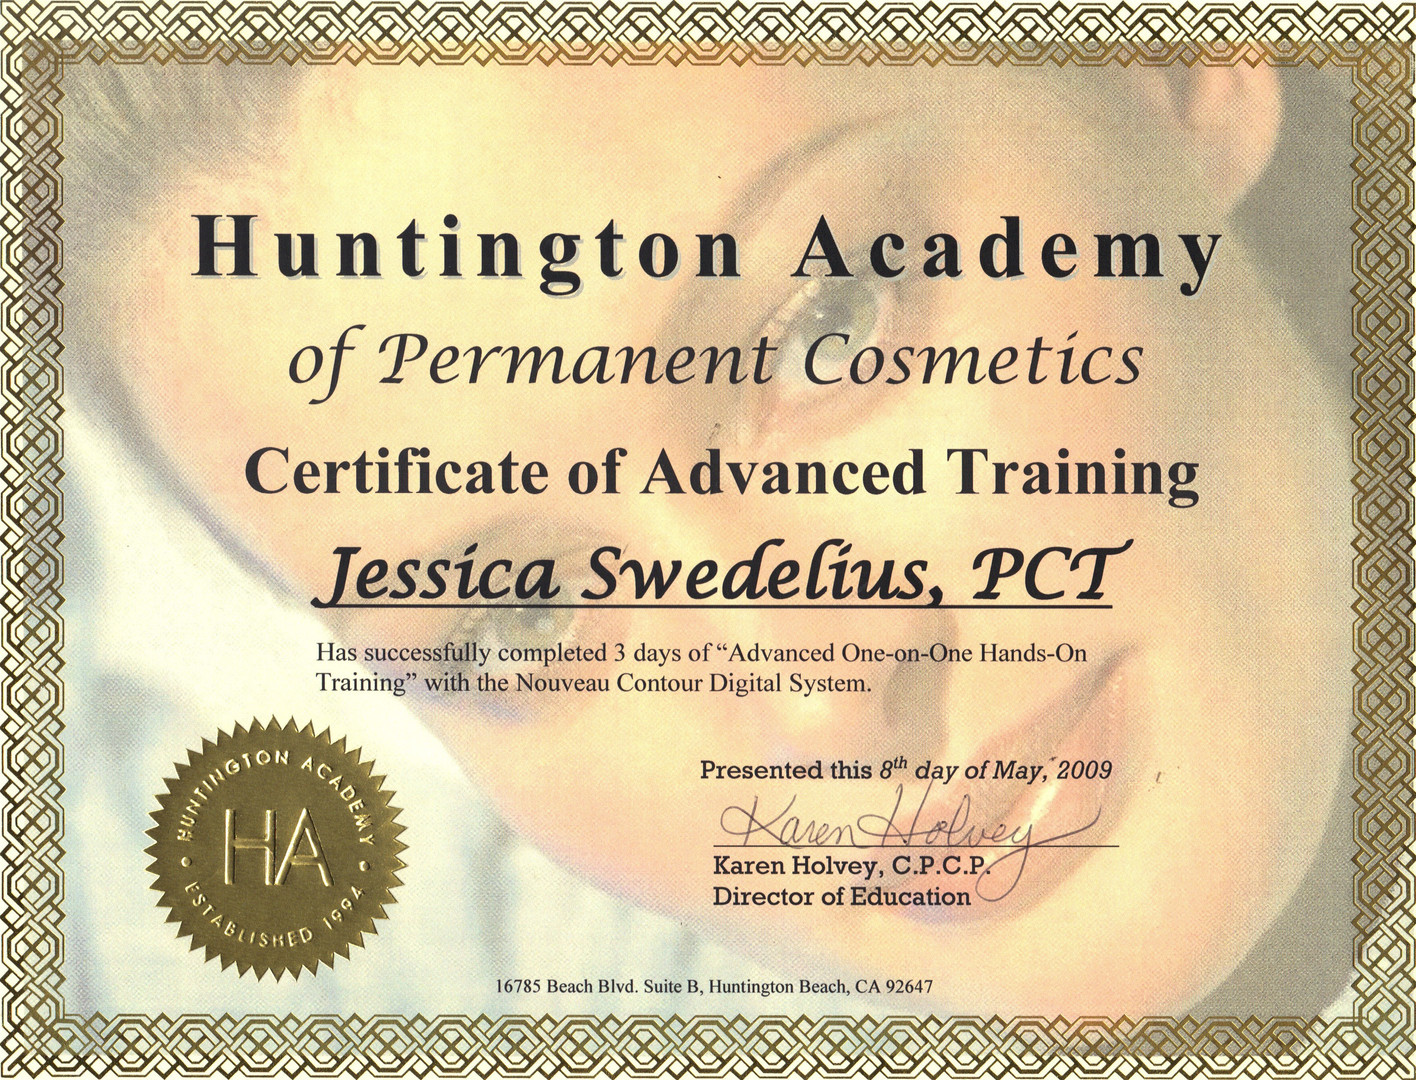 SY - Huntington Academy Perm Make Up Cer